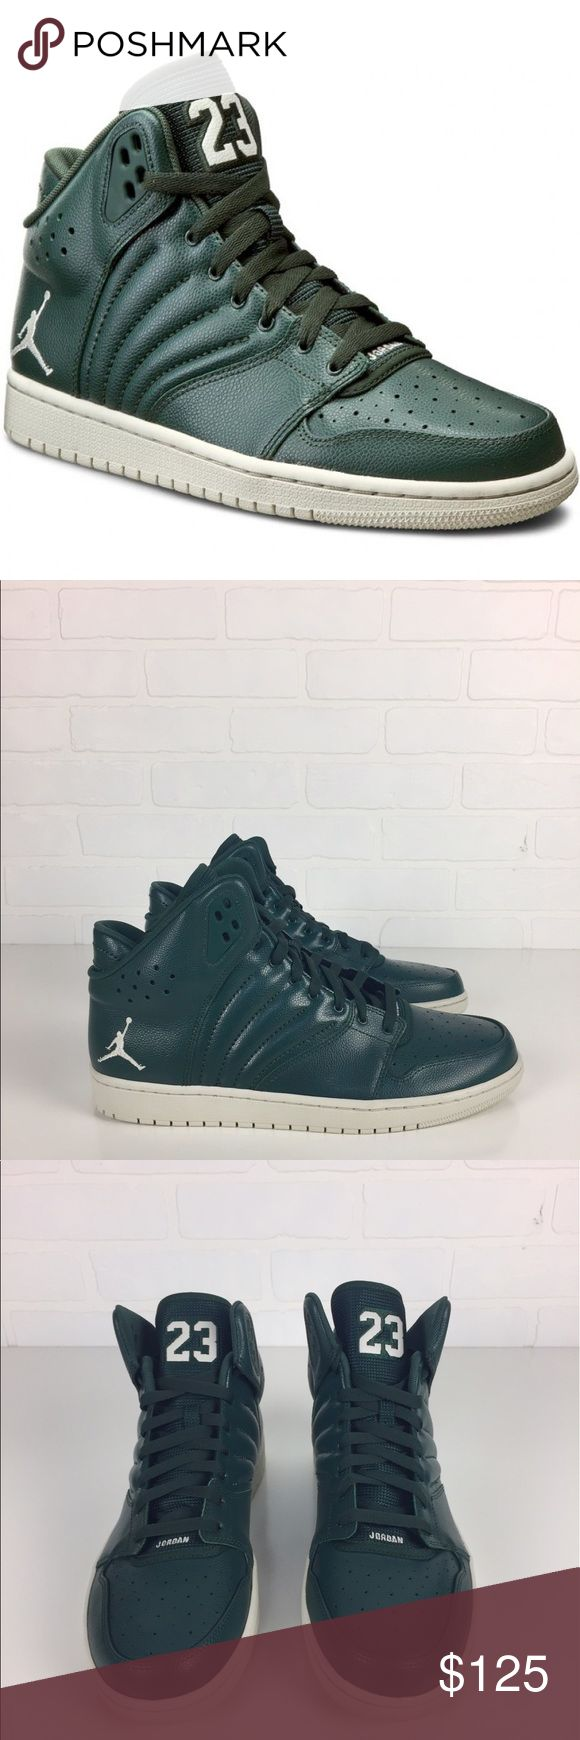 """NEW Nike Air Jordan 1 Flight 4 820135-300 Shoes 12 -Details- Retail Price: $134 Perforations for breathability  Padding at the ankle for extra comfort Encapsulated Air-Sole unit in the heel  Solid rubber outsole Slit grain and synthetic leathers Deel flex grooves for natural range of motion Designer Color: Grove Green / Light Bone Excellent Condition: No marks or scratches. Original Designer Shoebox Not Included -Measurements- Outsole length approx.: 12"""" Fit: True to size UK 11 / EU 46 / 30…"""